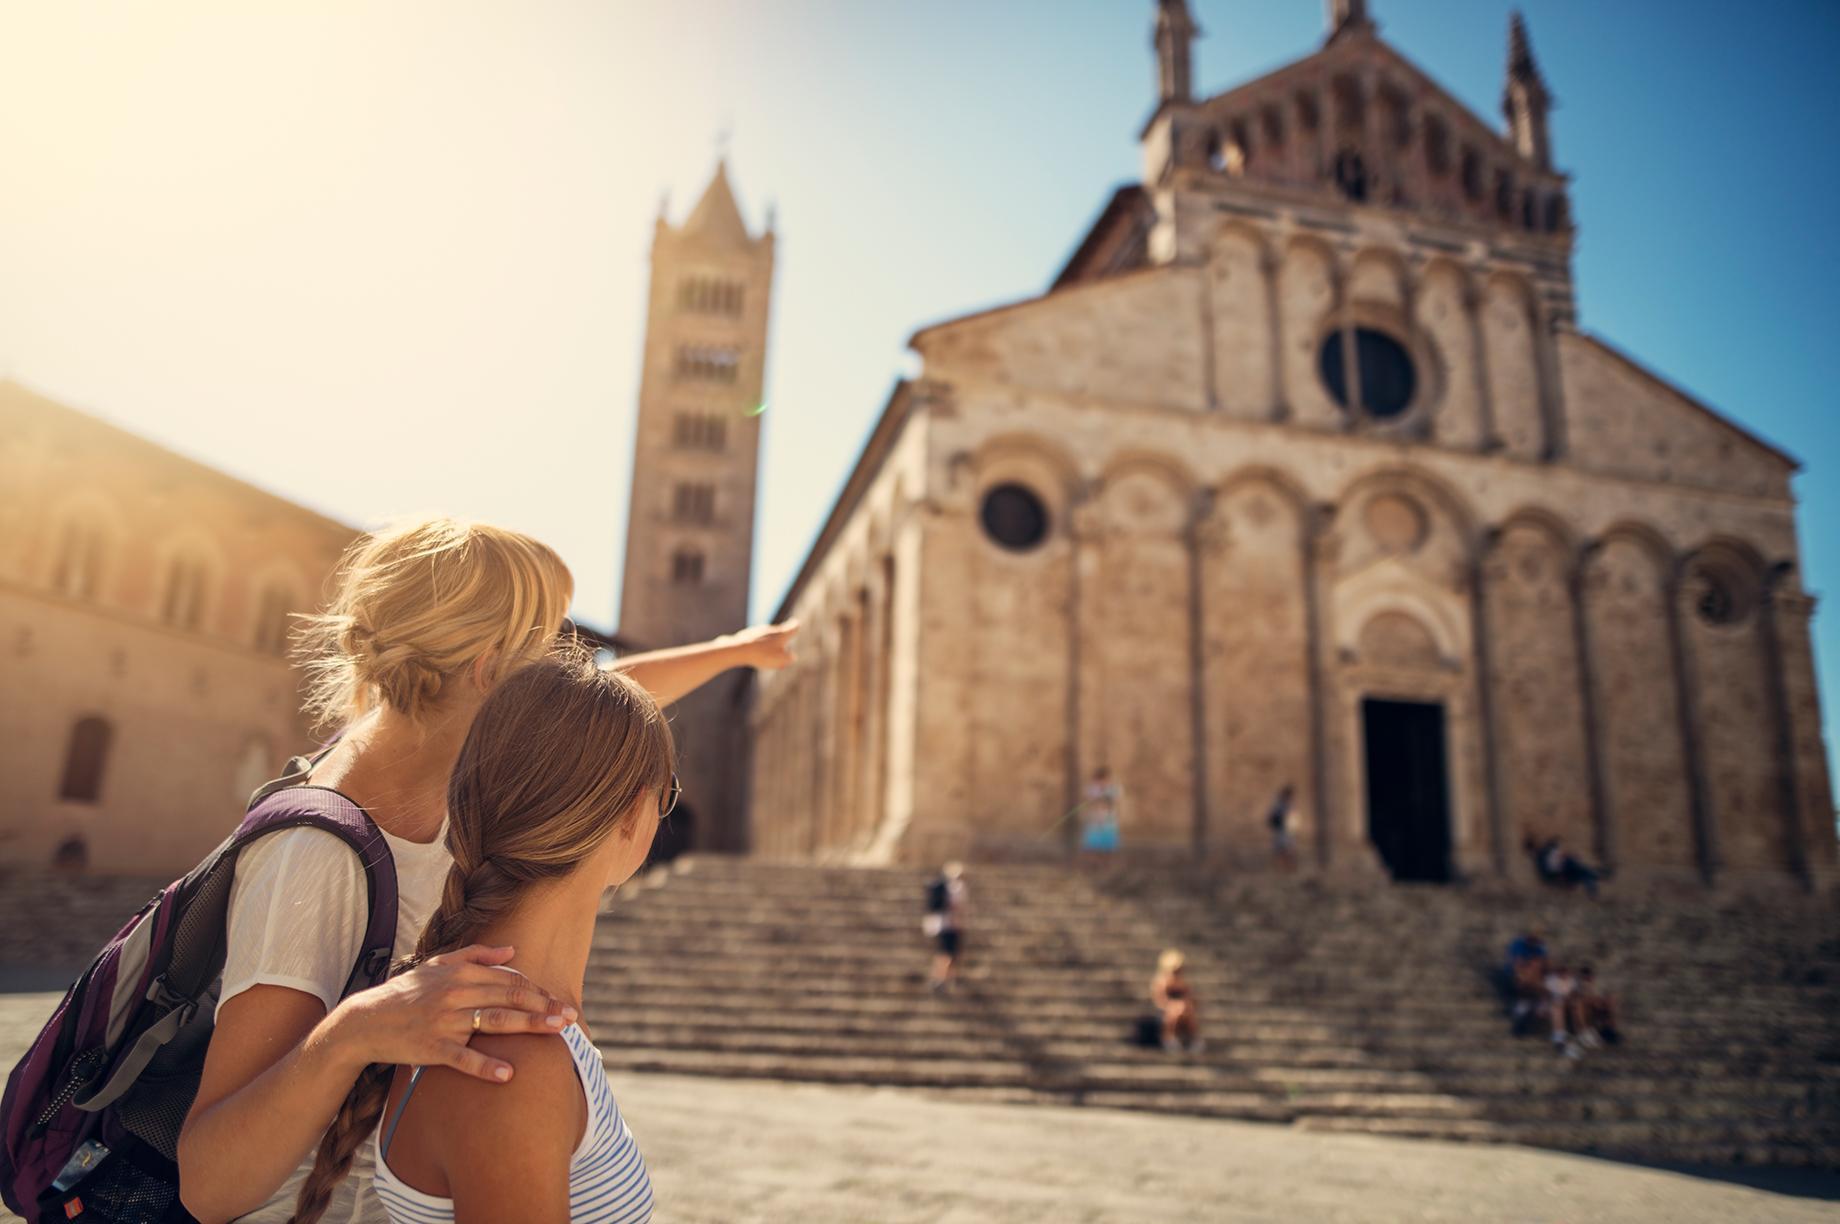 Take a Liberty Travel Guided tour and see the world in the best way: through your own eyes